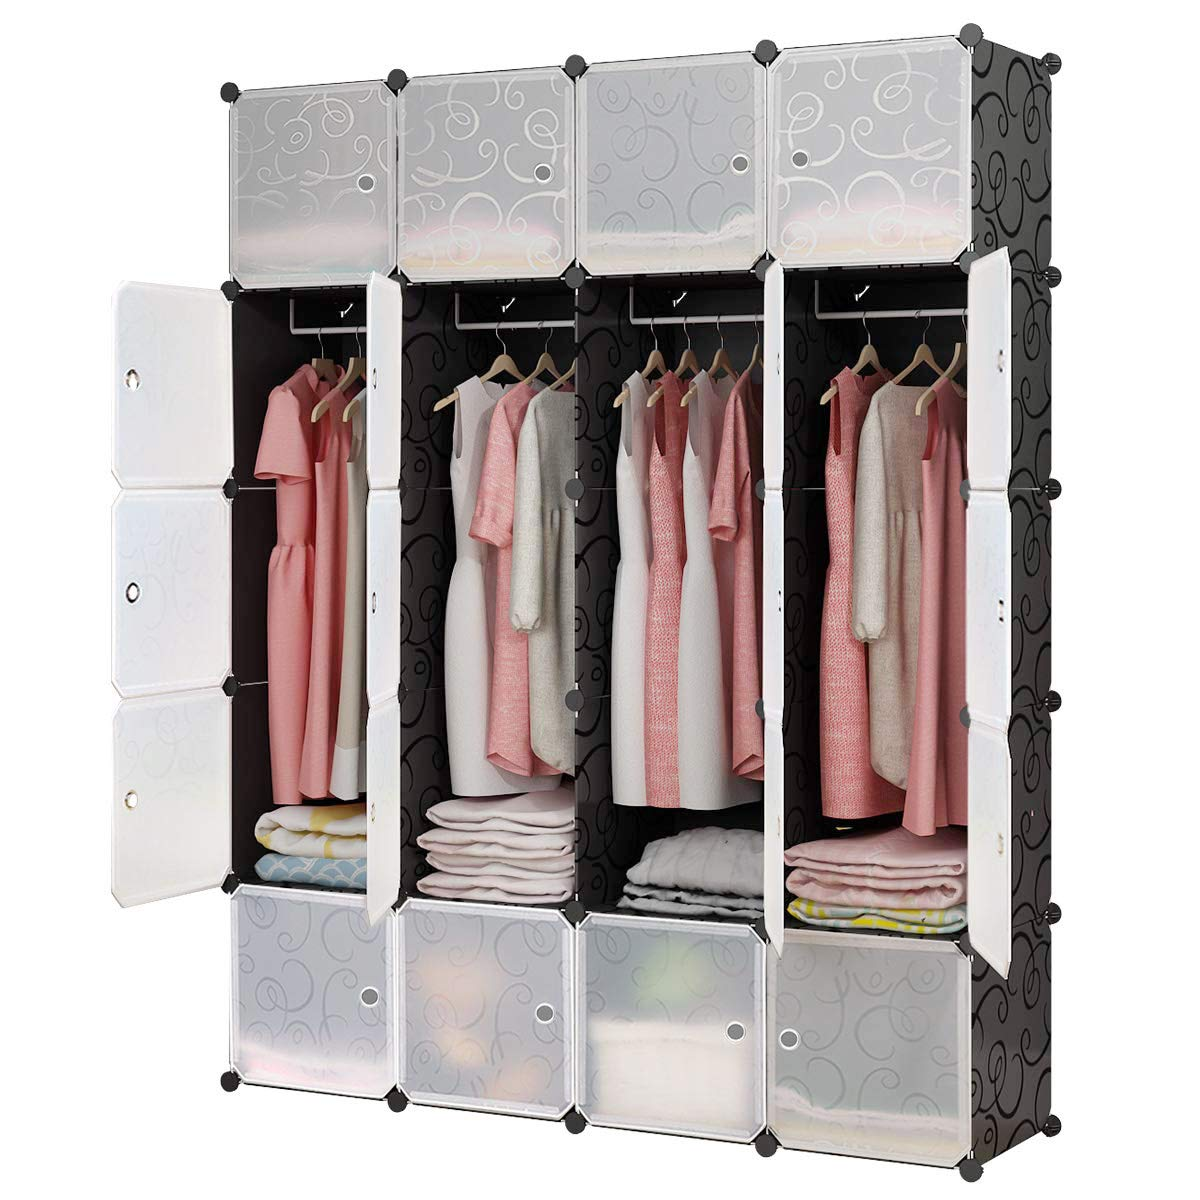 KOUSI Portable Closet Clothes Wardrobe Bedroom Armoire Storage Organizer with Doors, Capacious & Sturdy, Black, 5 Cubes+1 Hanging Sections